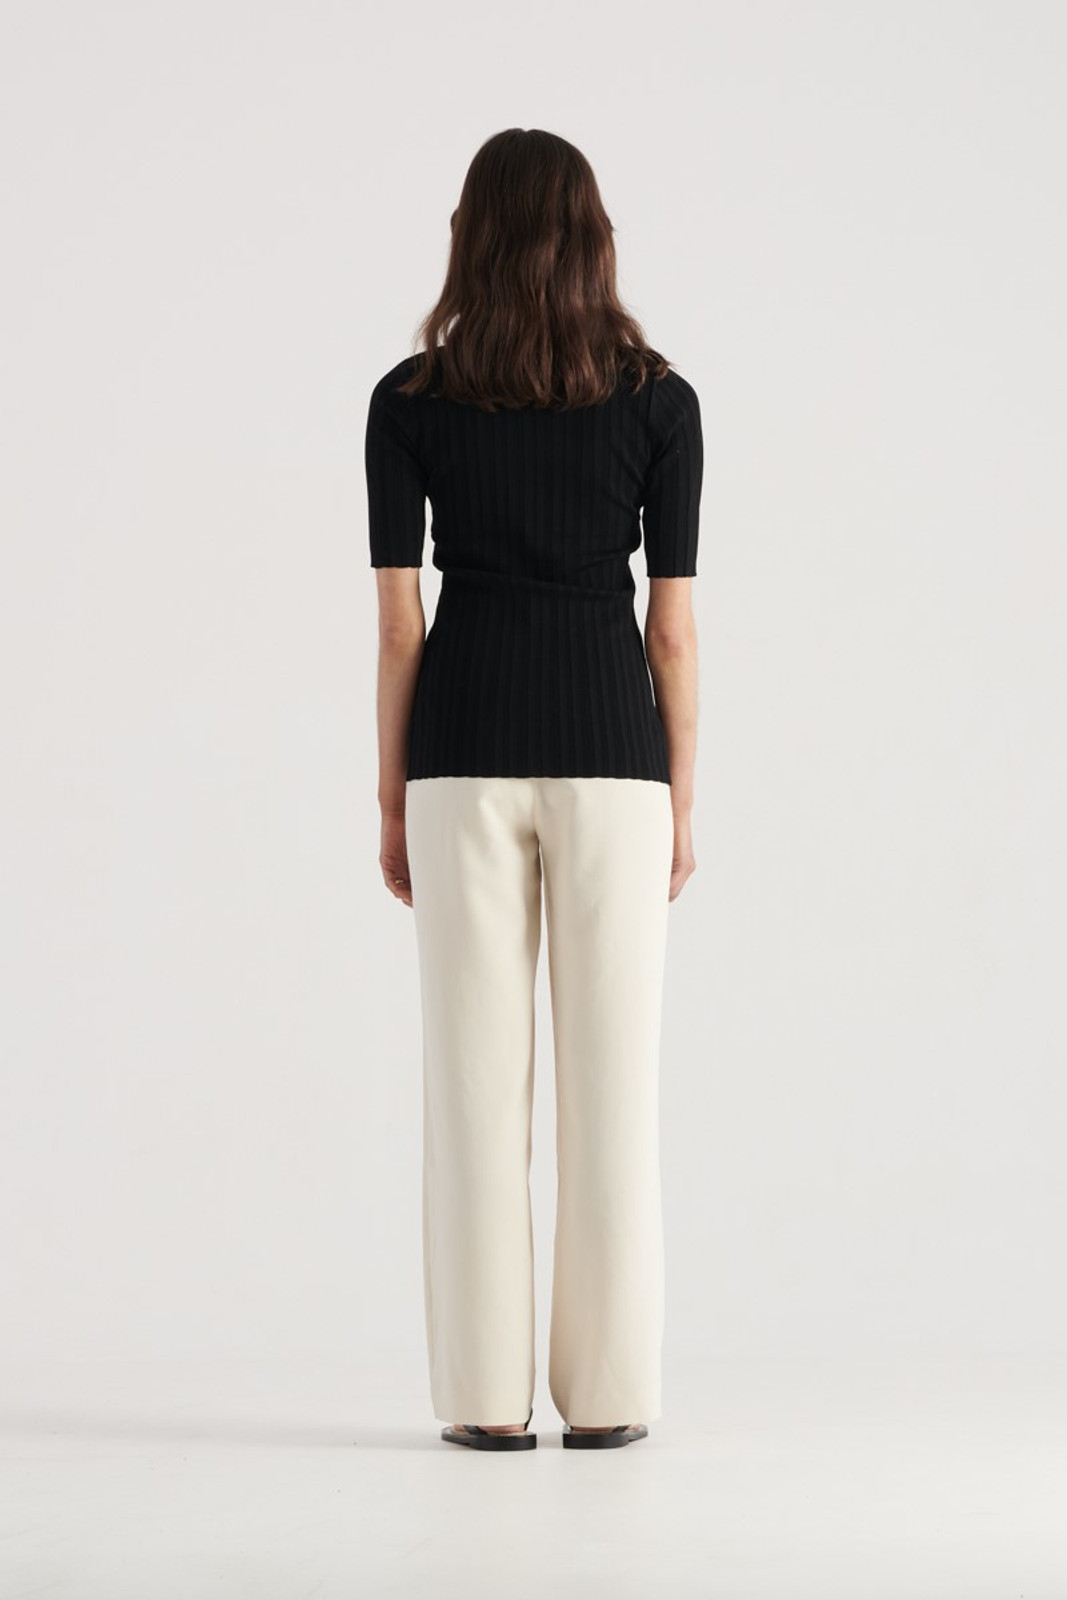 Elka Collective WOMENS Black Melody Knit 3